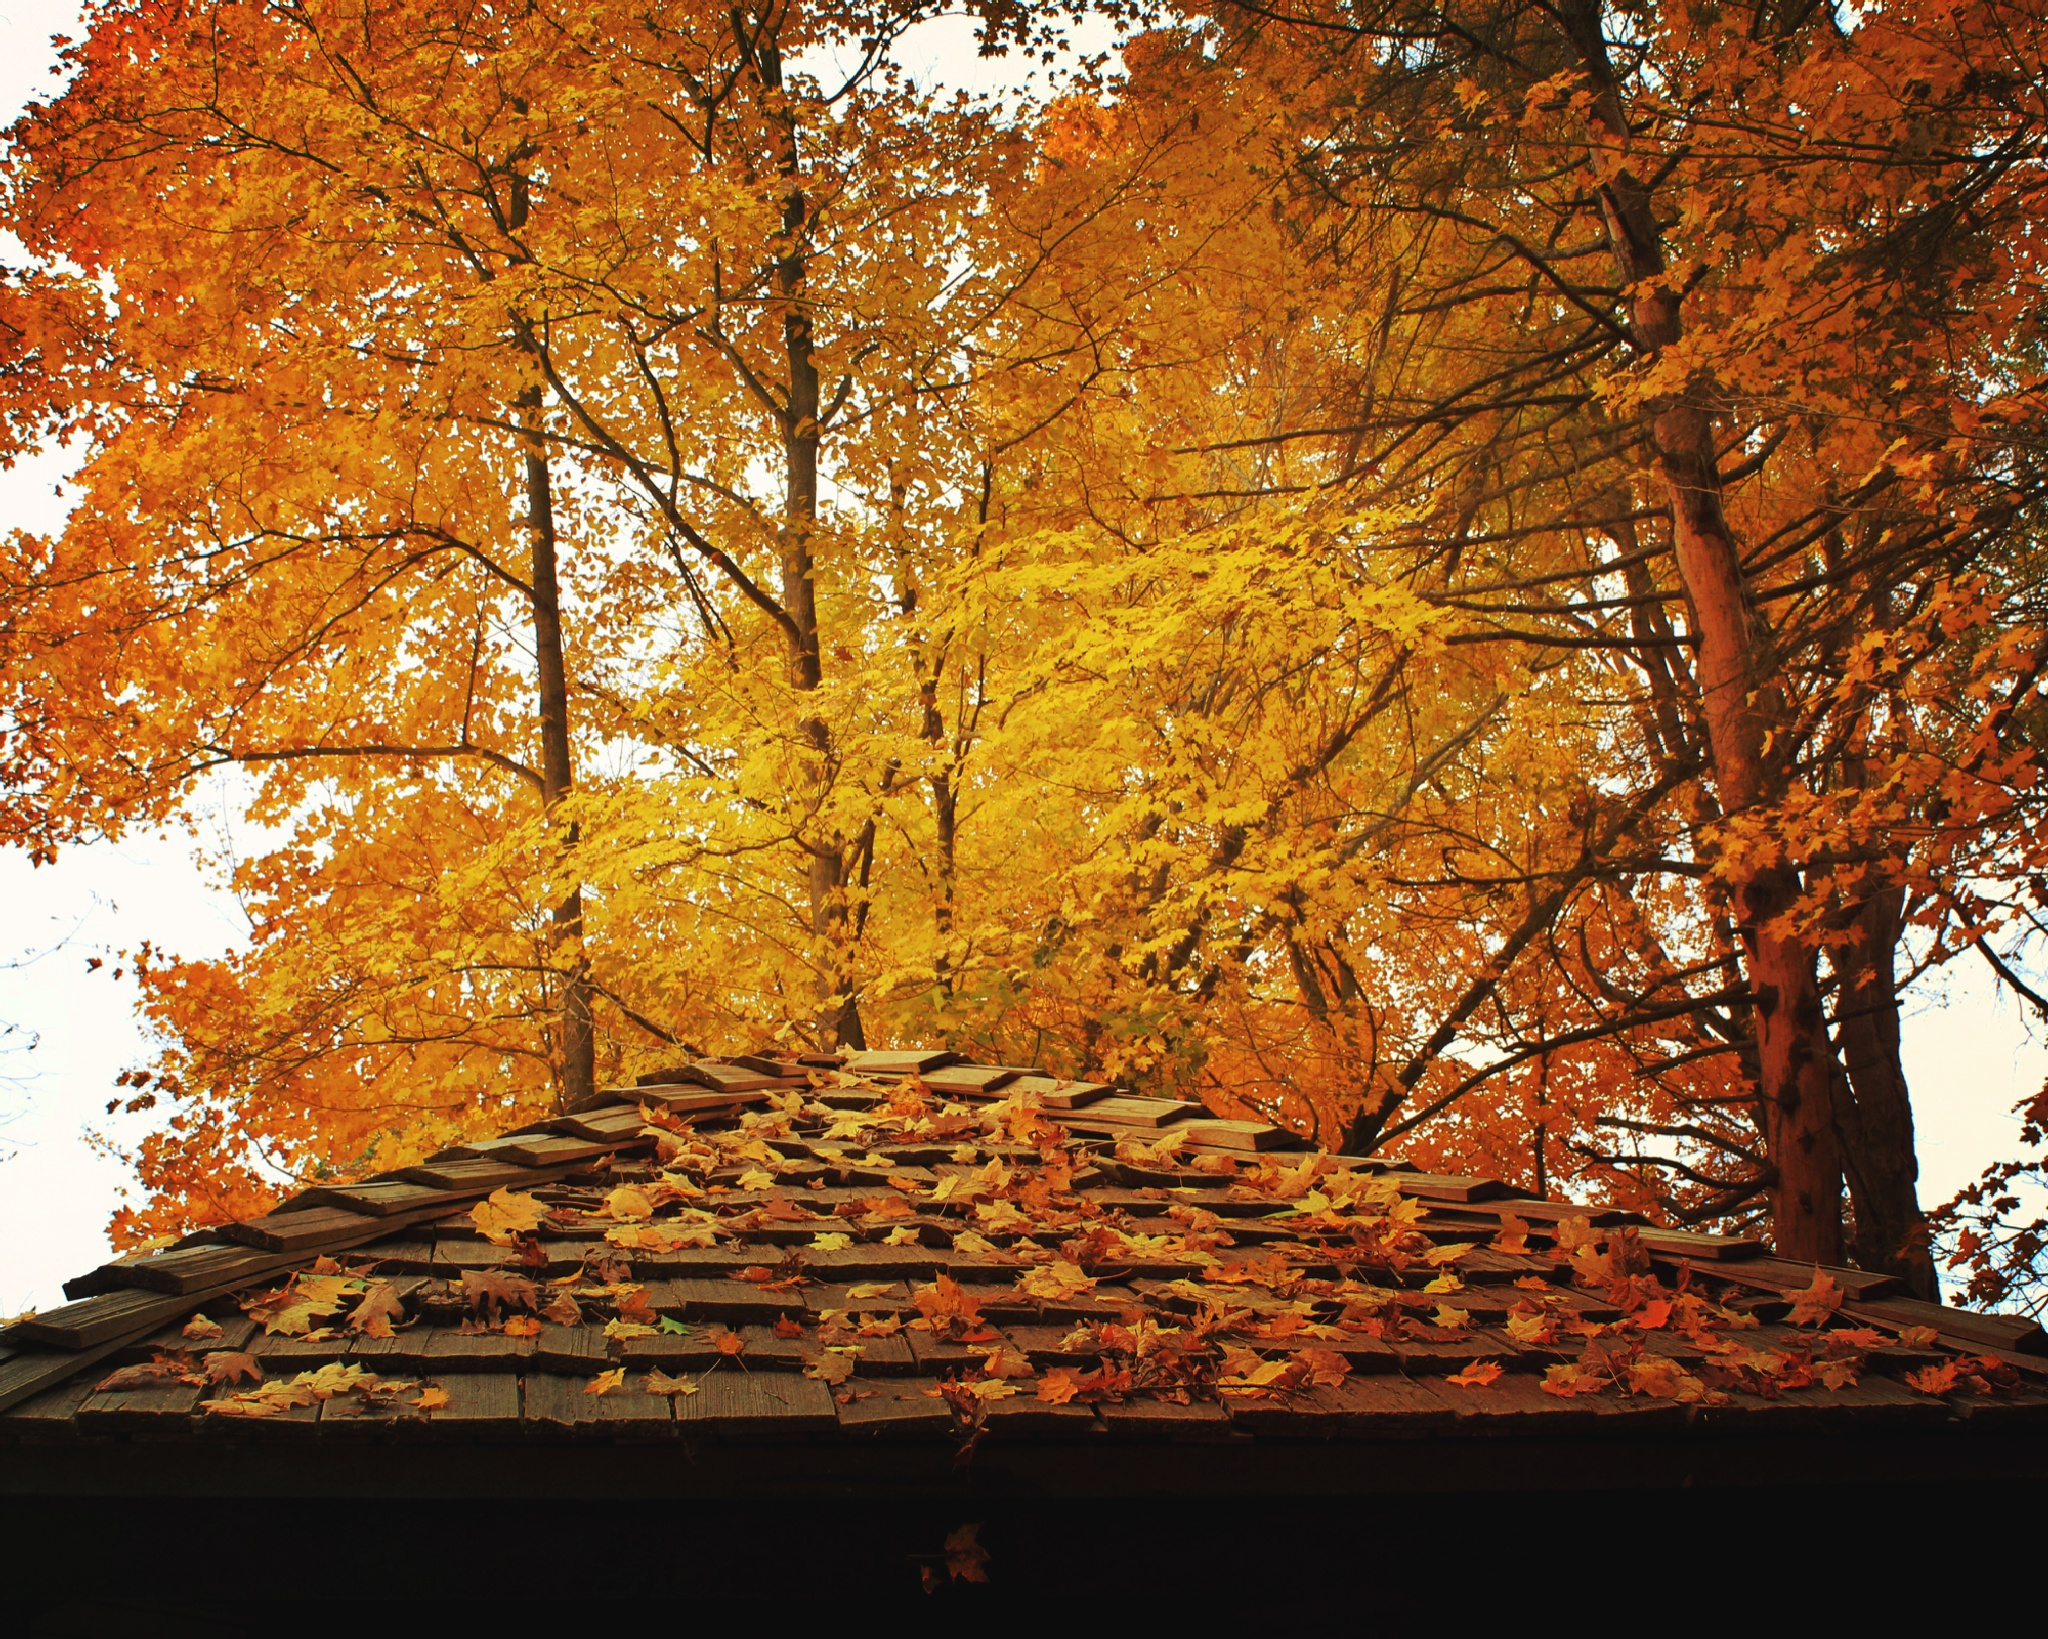 Up on the Housetop by mattdevore